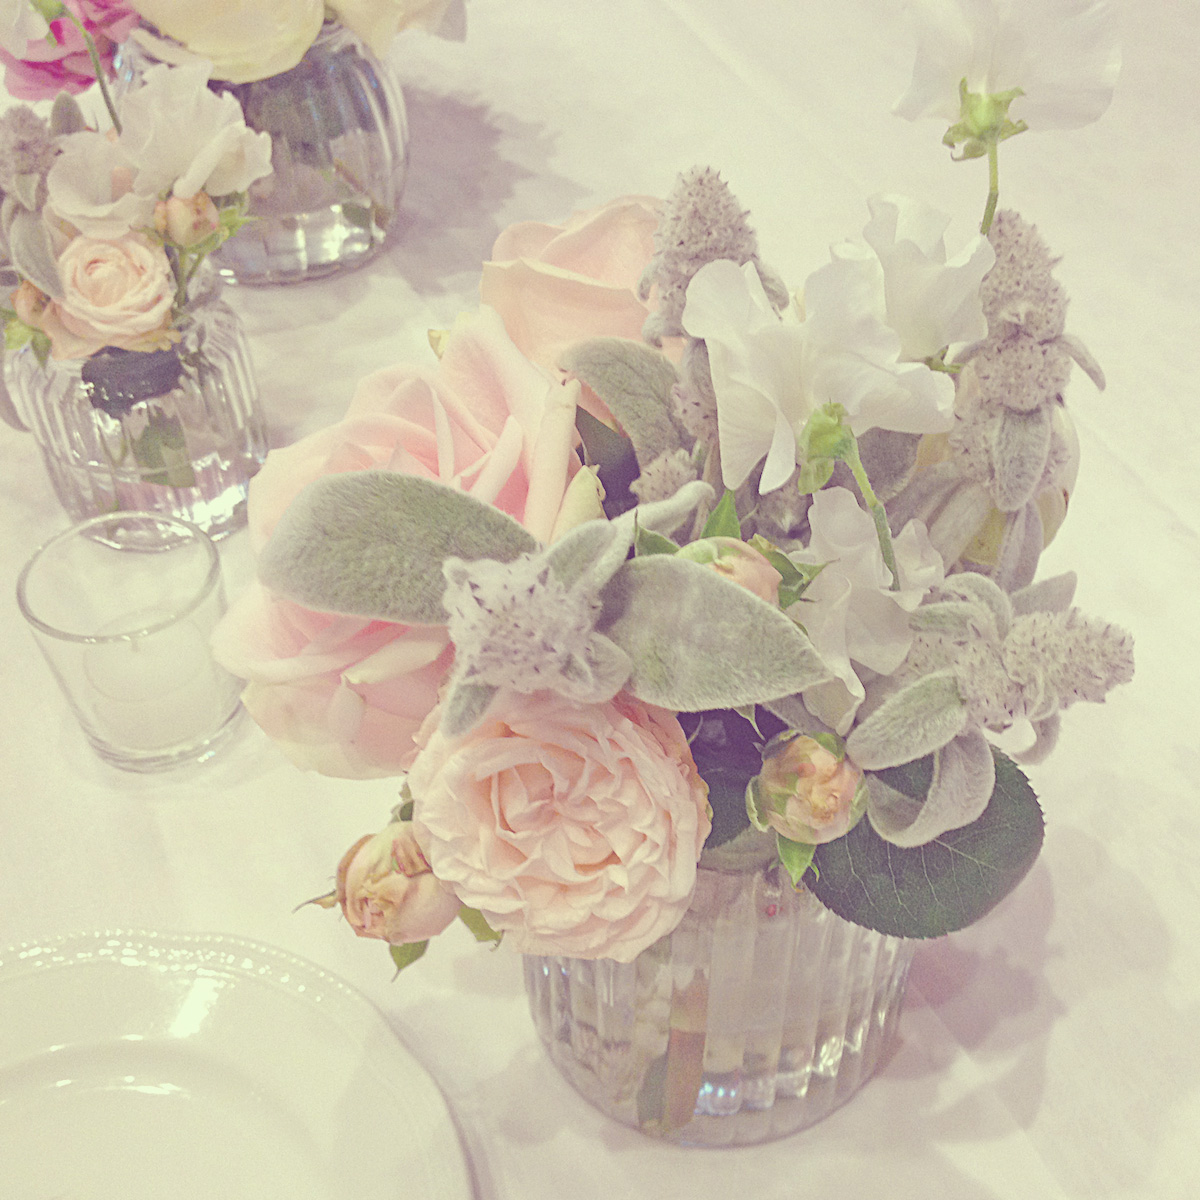 08-wedding-lake-garda-centerpieces-grey-mint-blush-pink